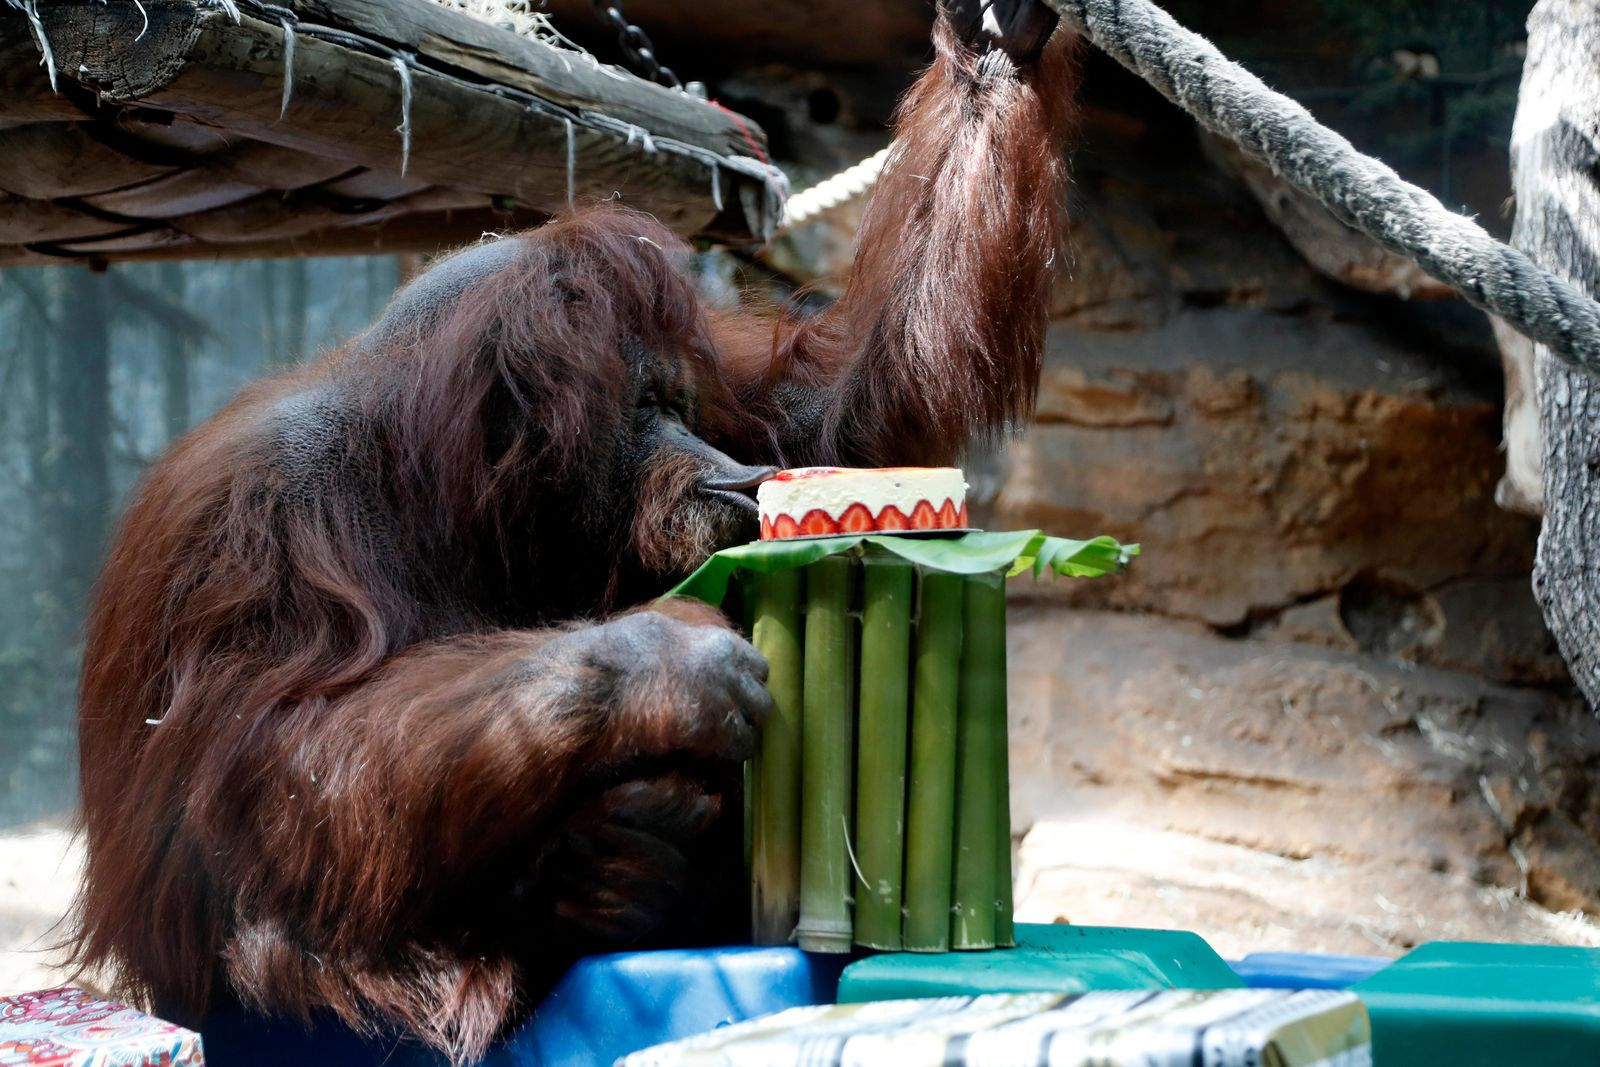 Orangutan Nenette eats a cake as she celebrates her 50th birthday, at the Jardin des Plantes zoo, in Paris, Sunday, June 16, 2019. (AP Photo/Thibault Camus)